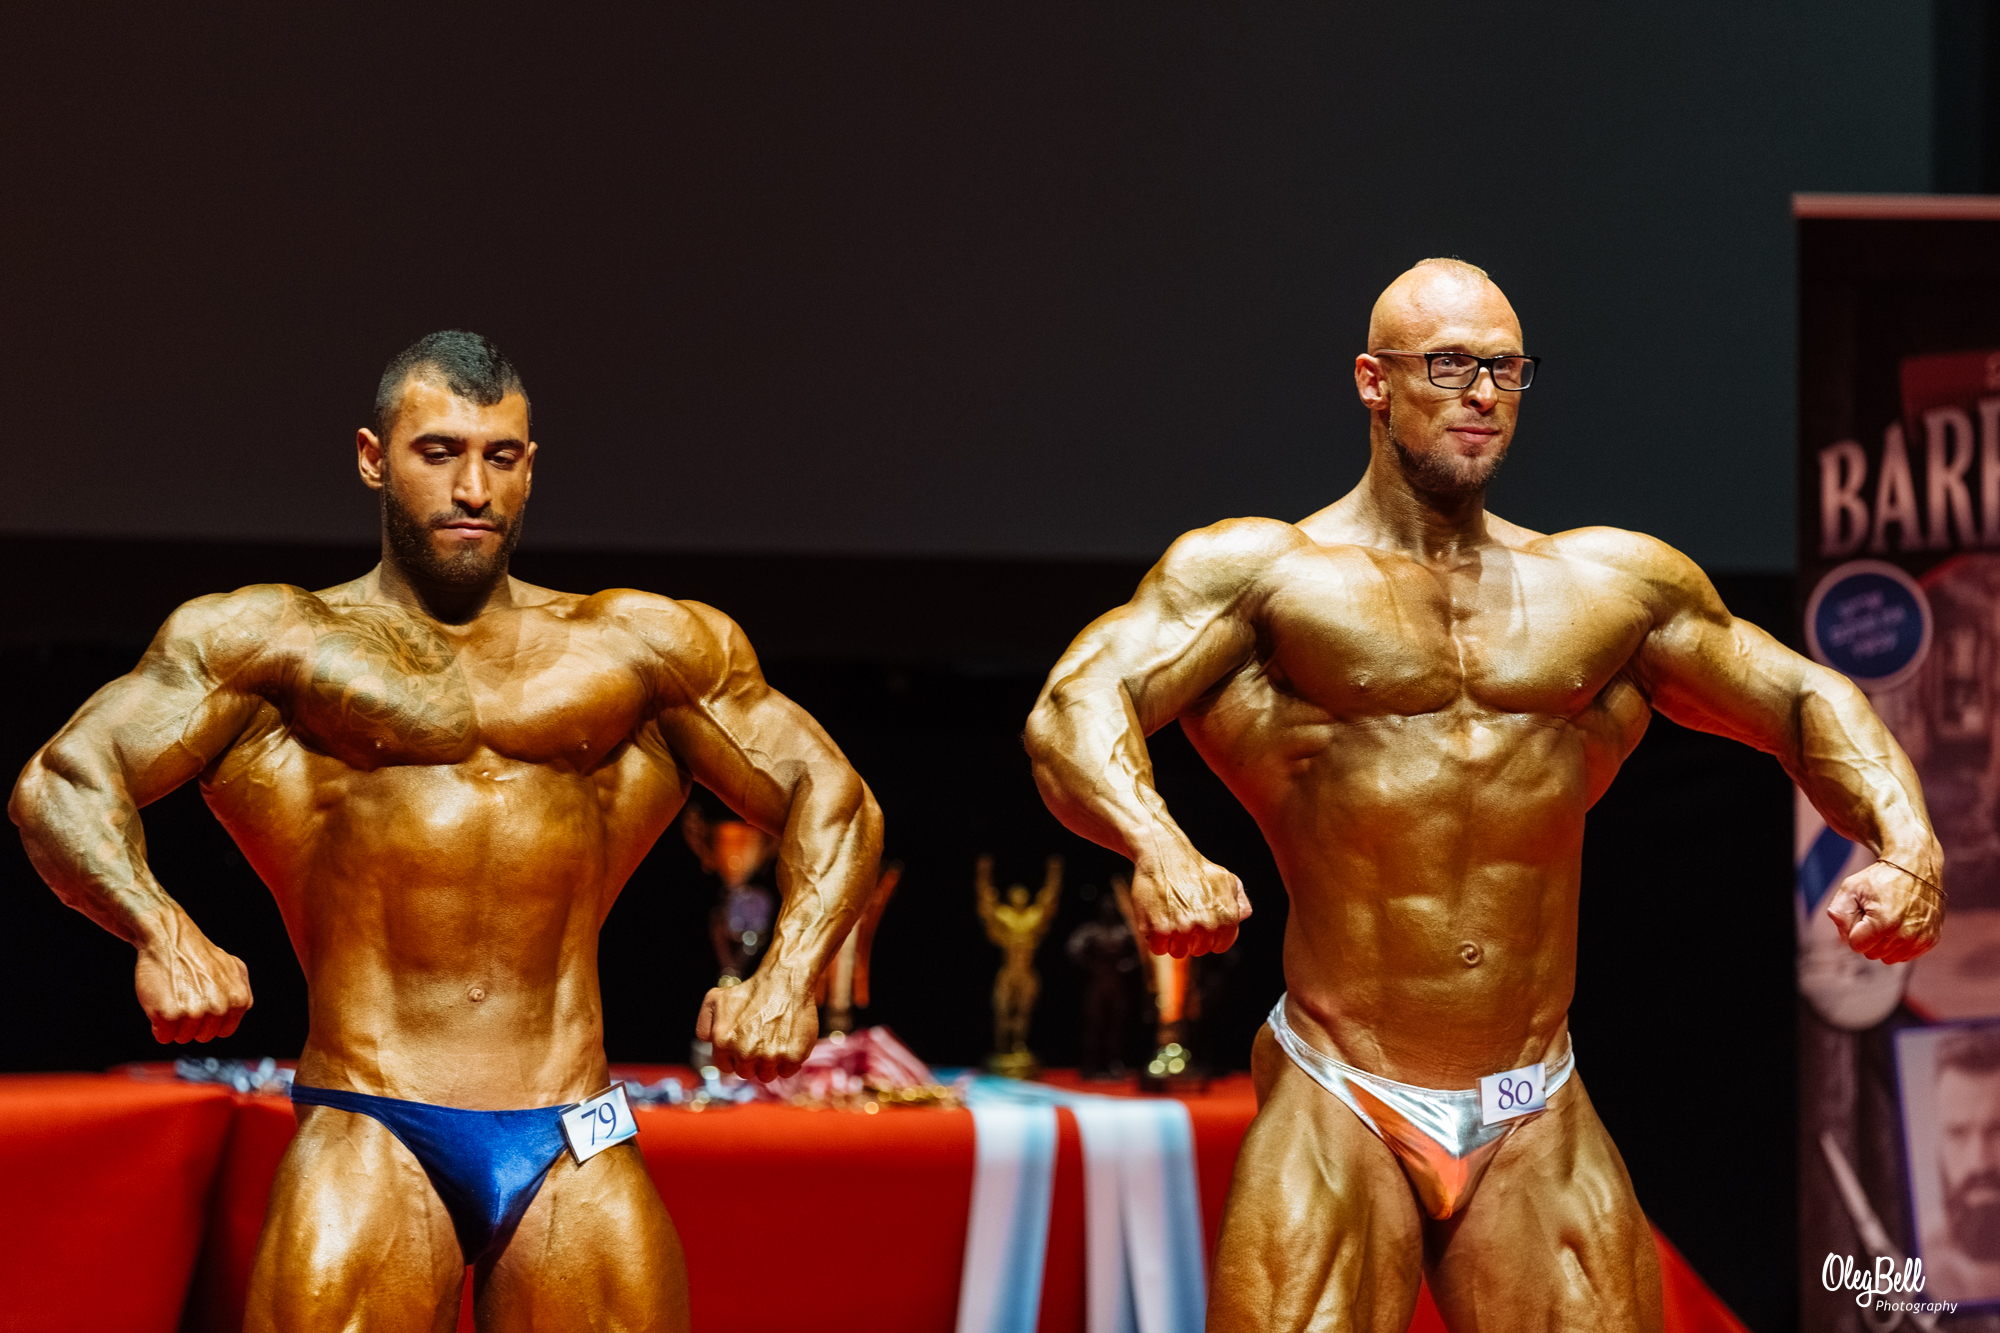 NICOLE_BODYBUILDING_COMPETITIONS_0819.jpg